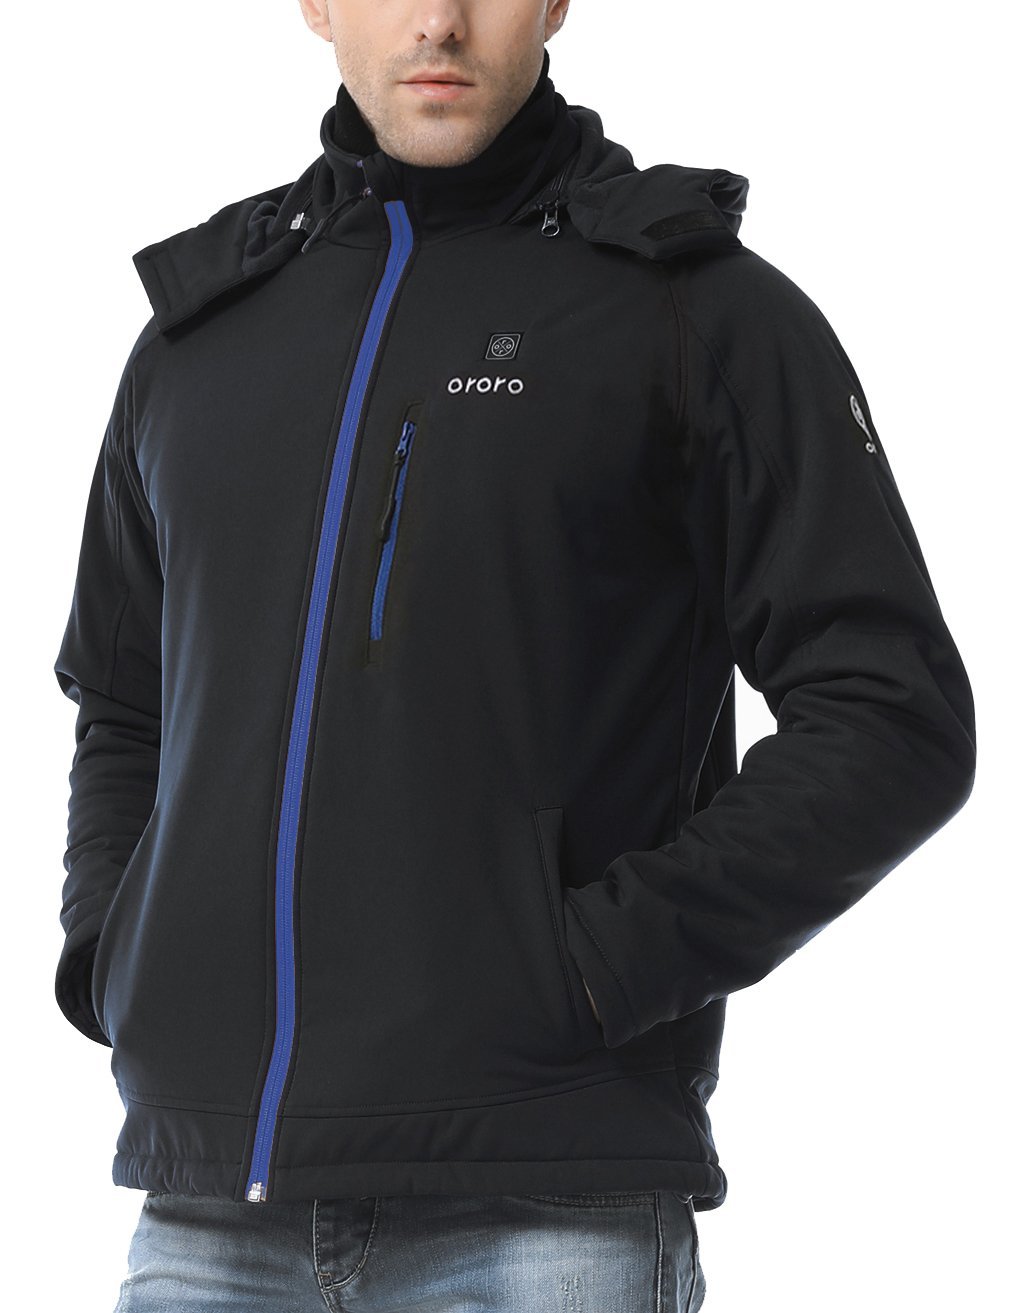 ororo Men's Soft Shell Heated Jacket Kit with Detachable Hood and Battery Pack (Blue,XL) by ororo